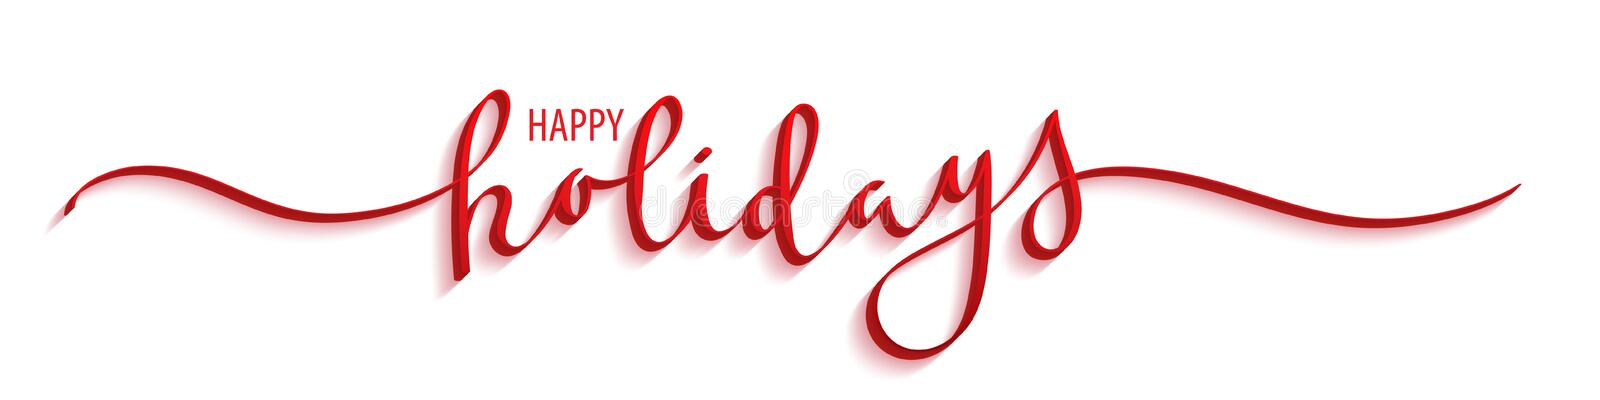 HAPPY HOLIDAYS red brush calligraphy banner stock image